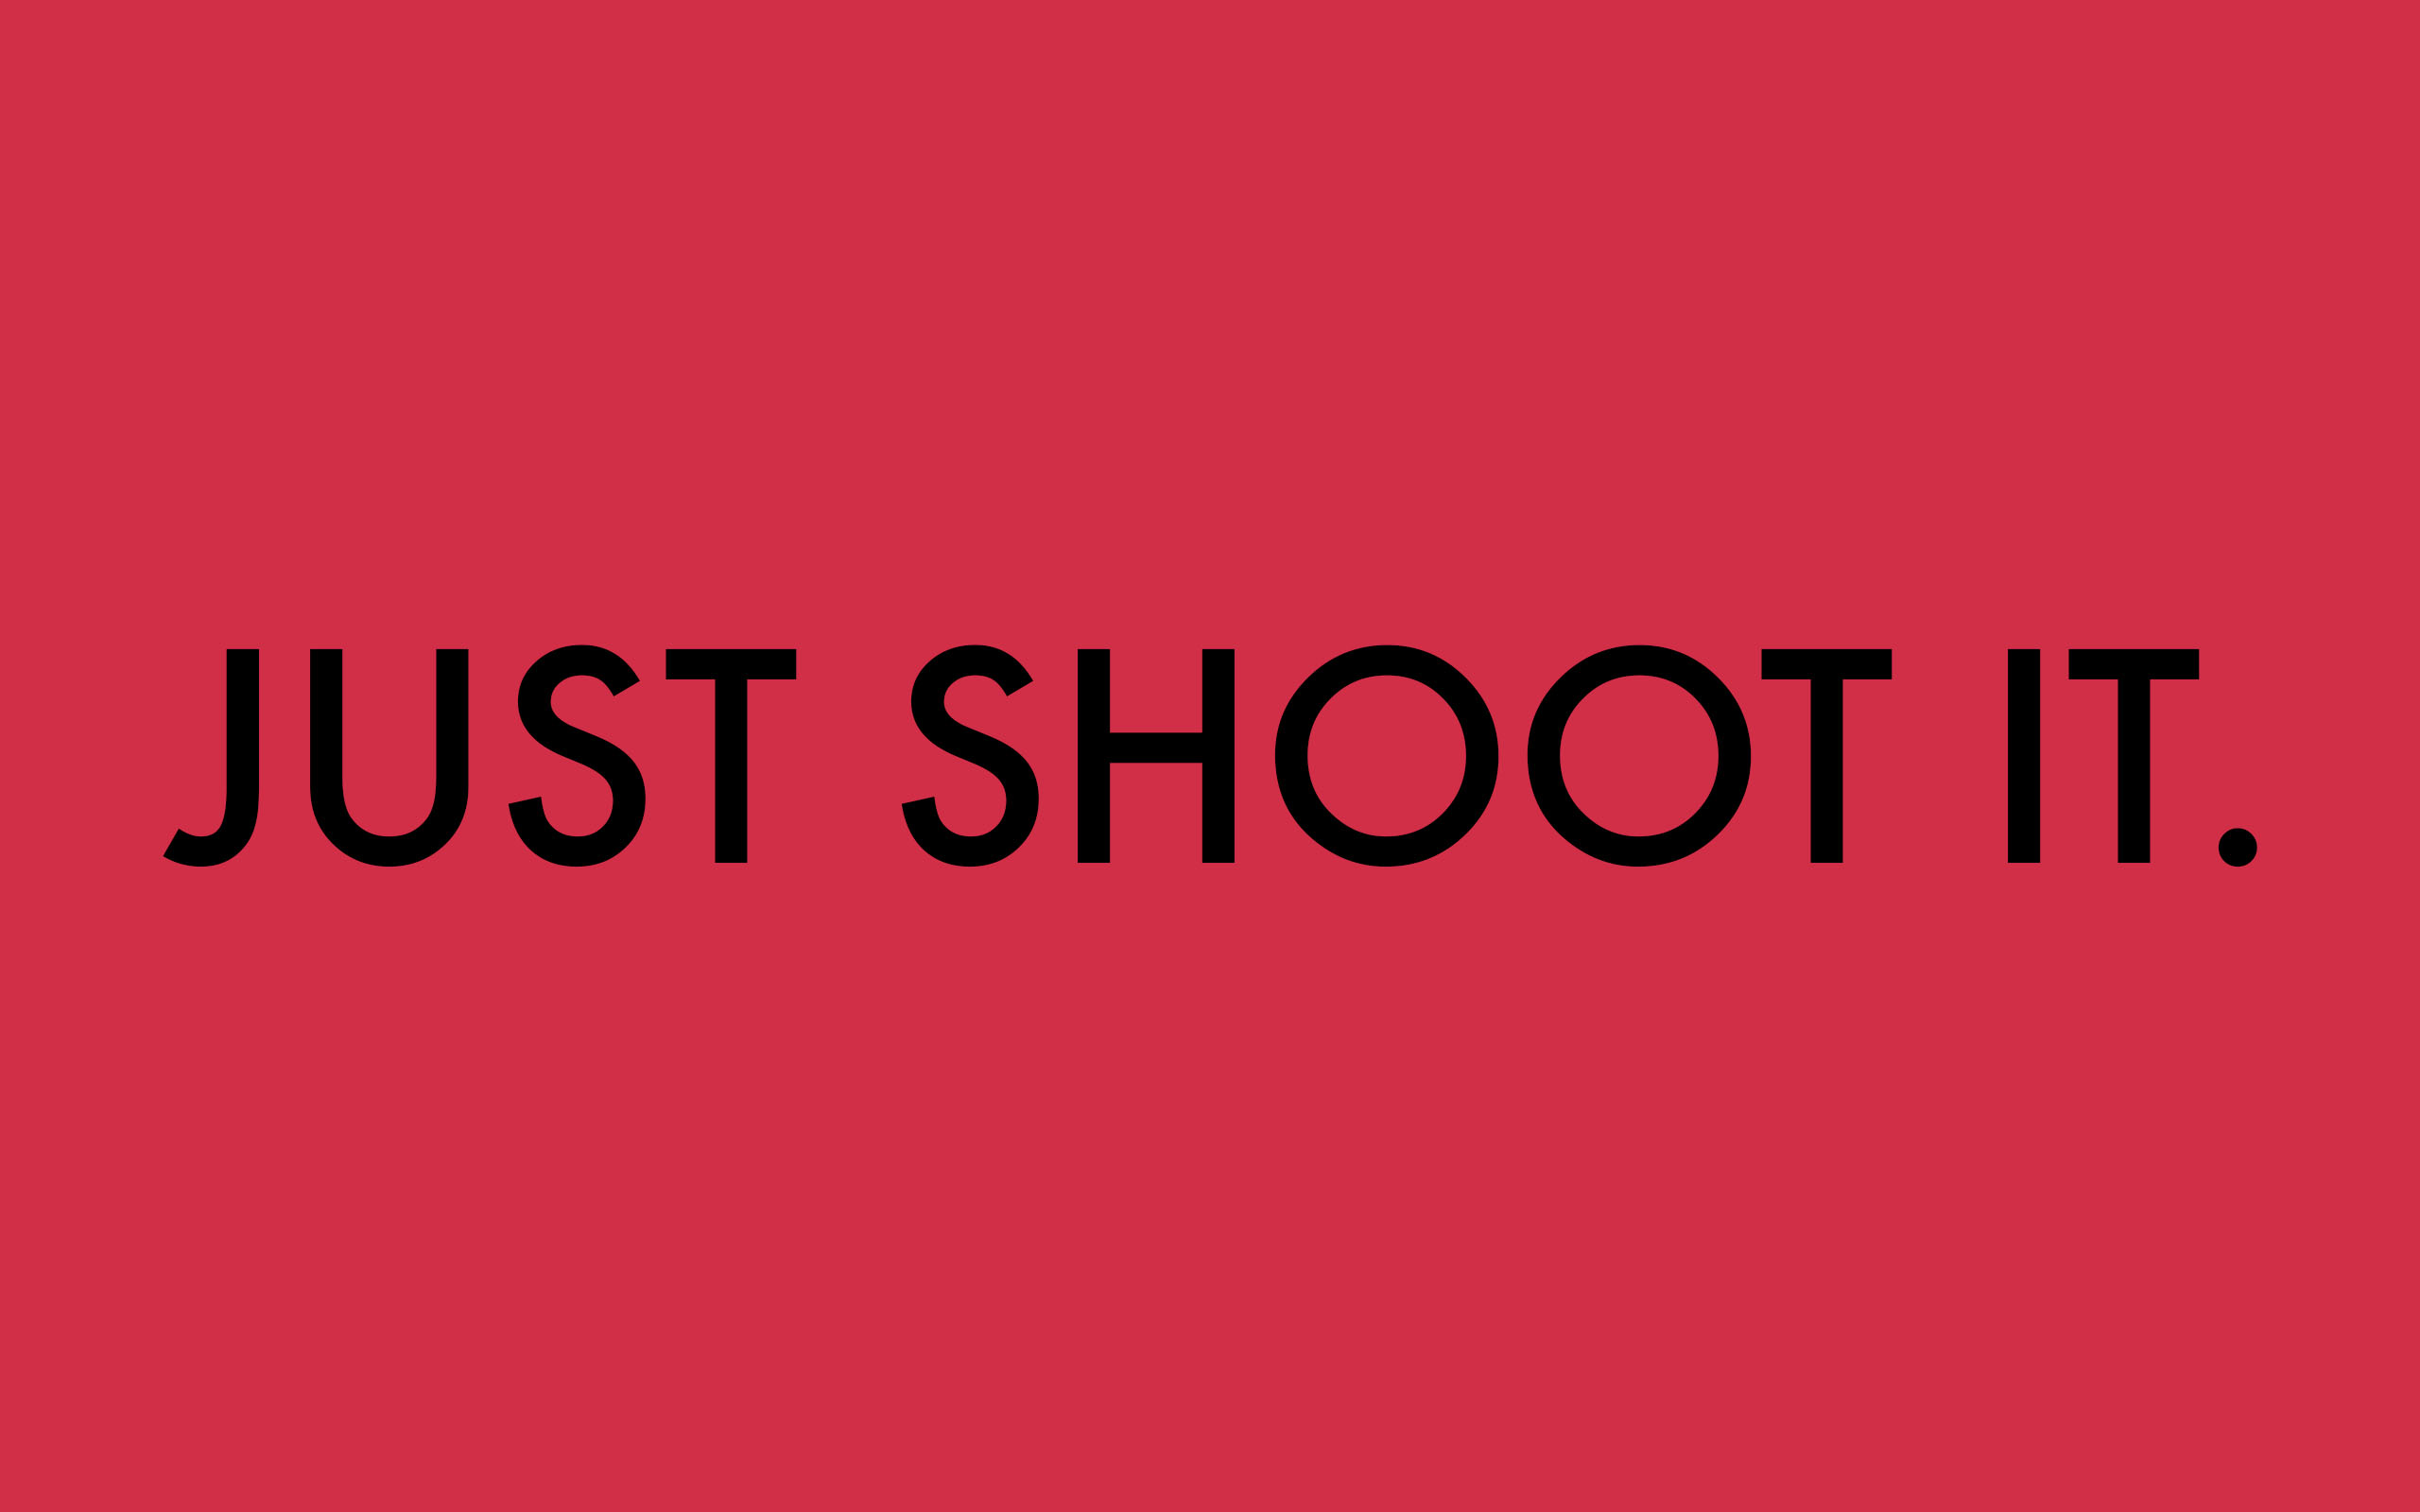 JUST SHOOT IT. ERIC KIM